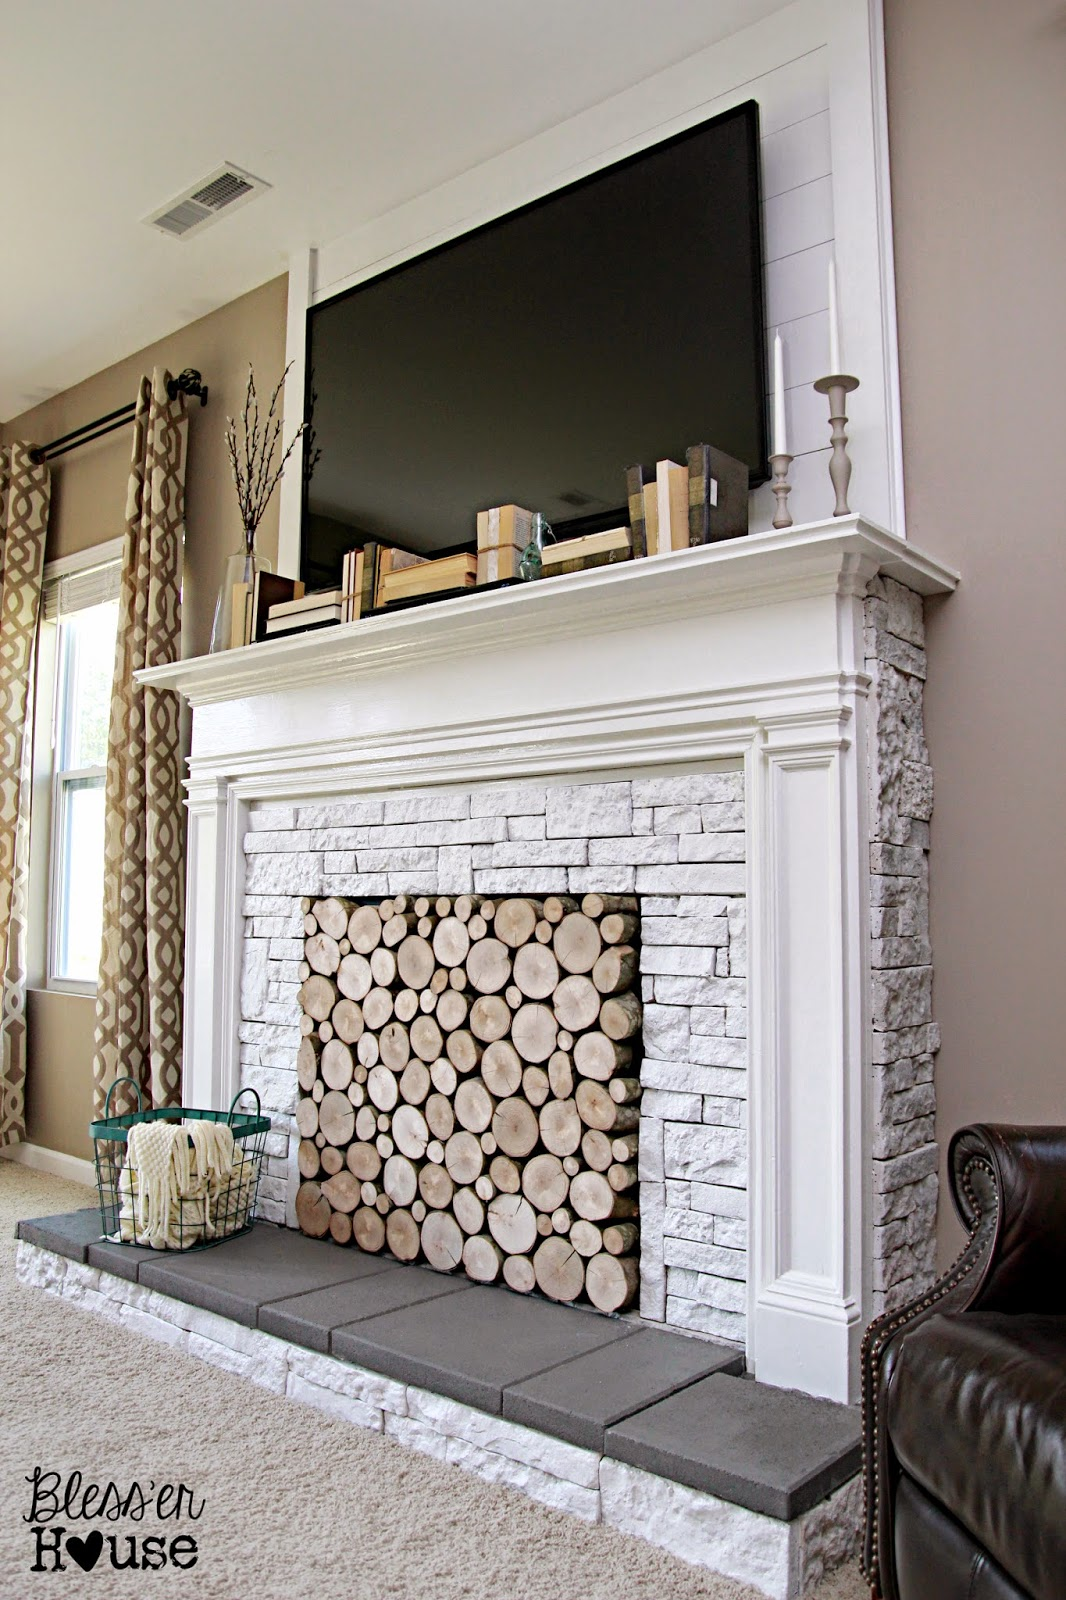 Diy faux fireplace for under 600 the big reveal bless Fireplace ideas no fire